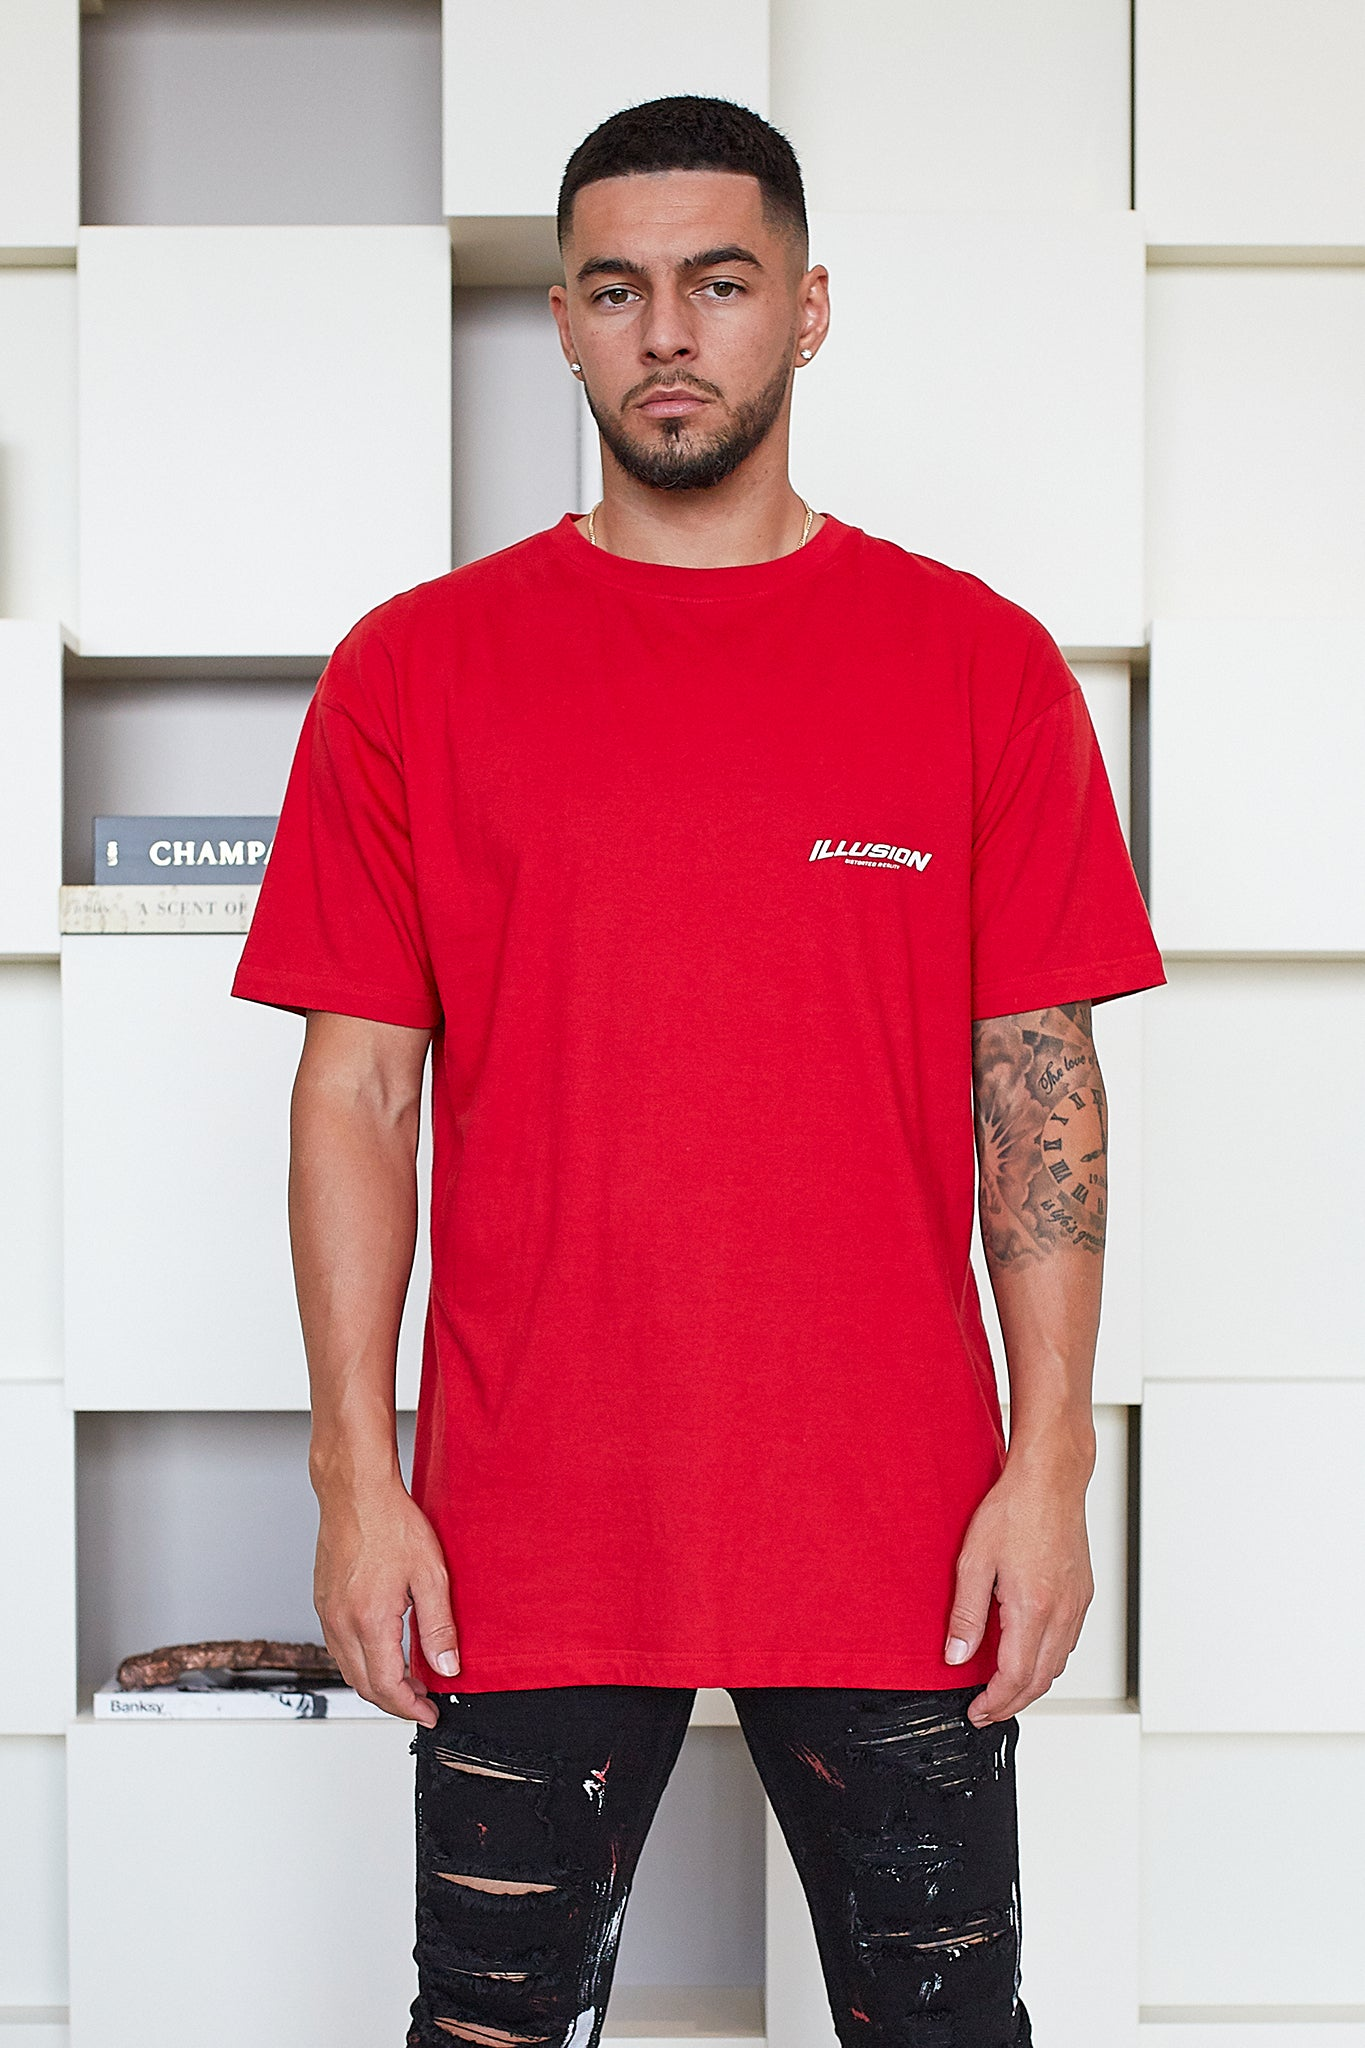 RED DISTORTED REALITY T-SHIRT - Illusion Attire